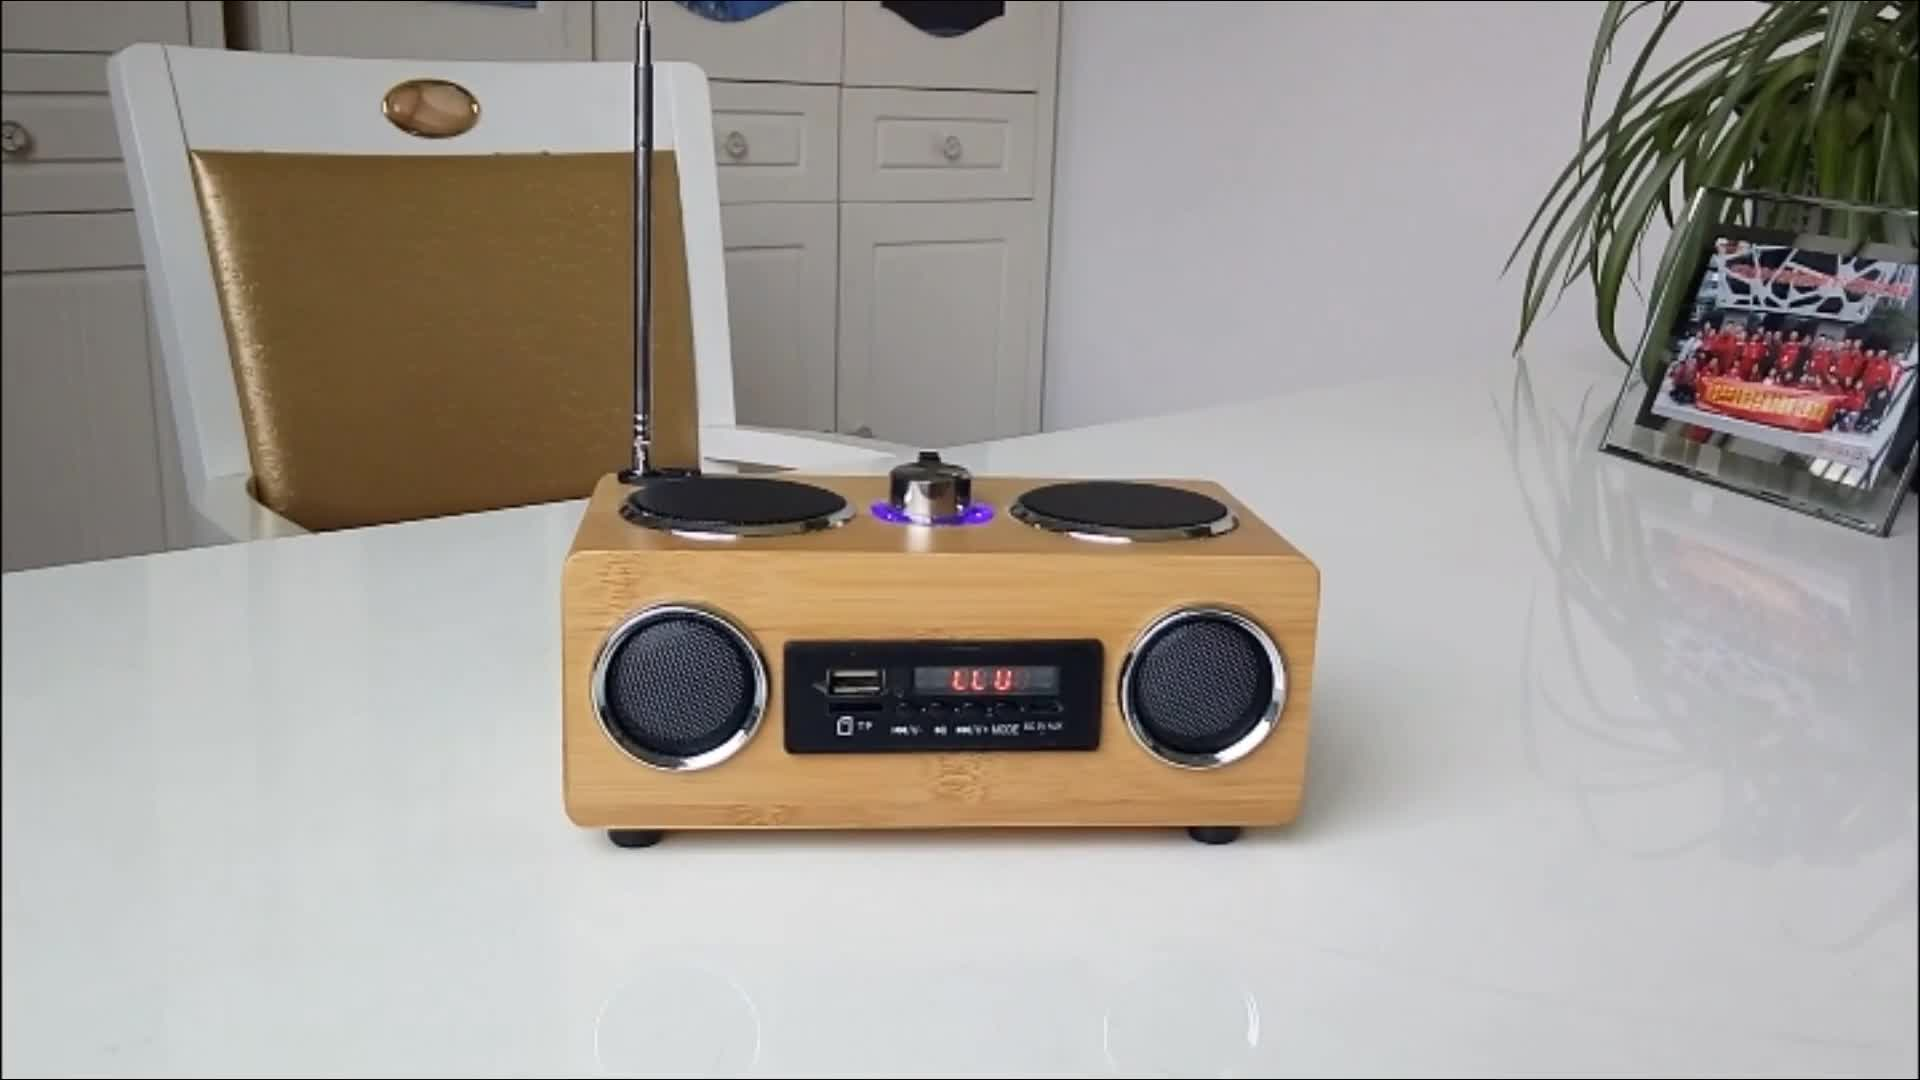 2019 hot sem fio novo design quadrado portátil speaker/mini speaker bluetooth a partir de Tecnologia De Bambu